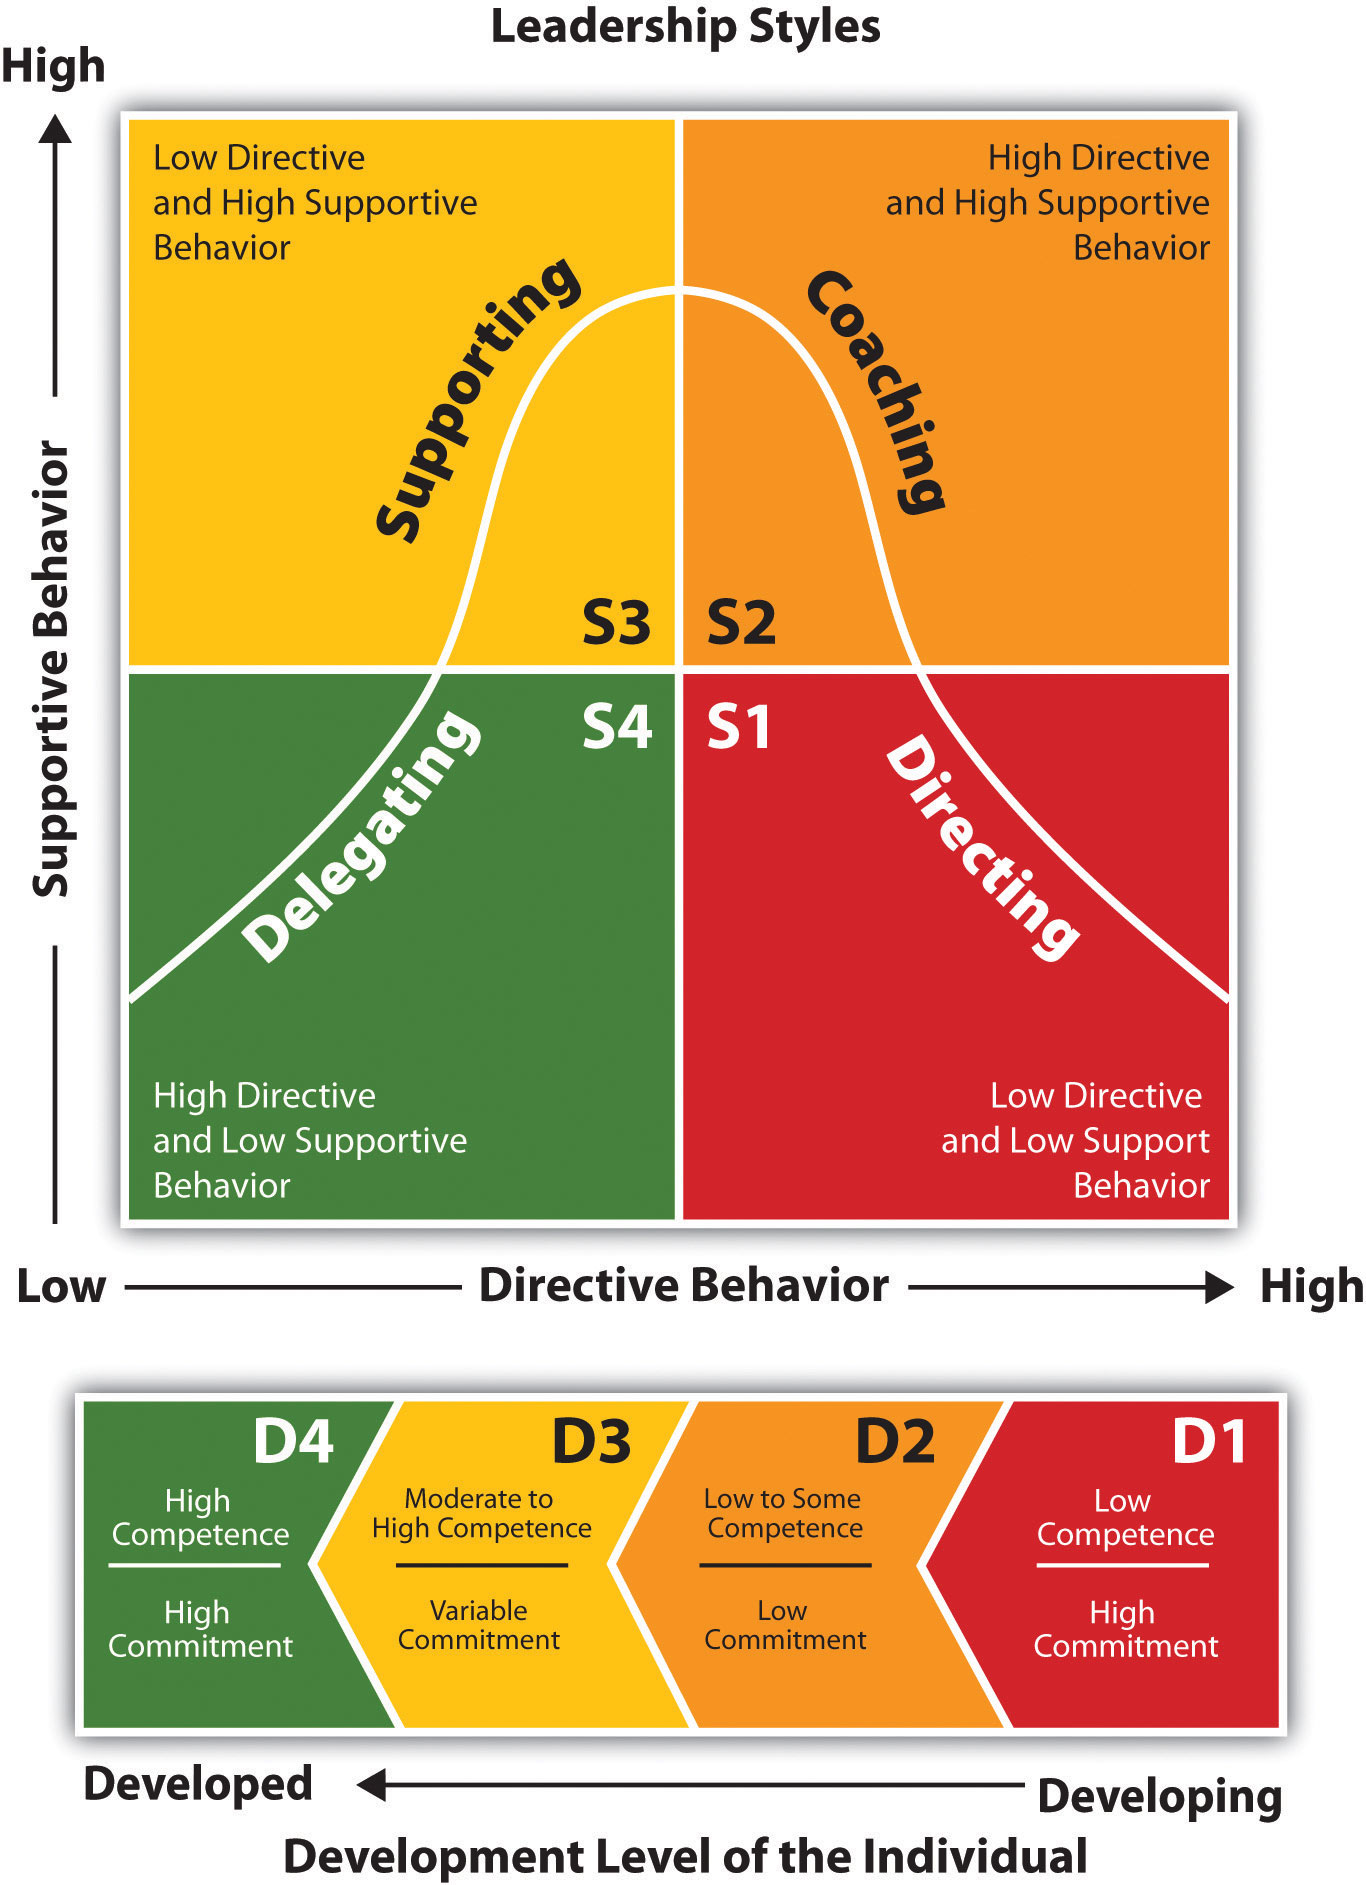 Four Basic Leadership Styles Used by Situational Managers